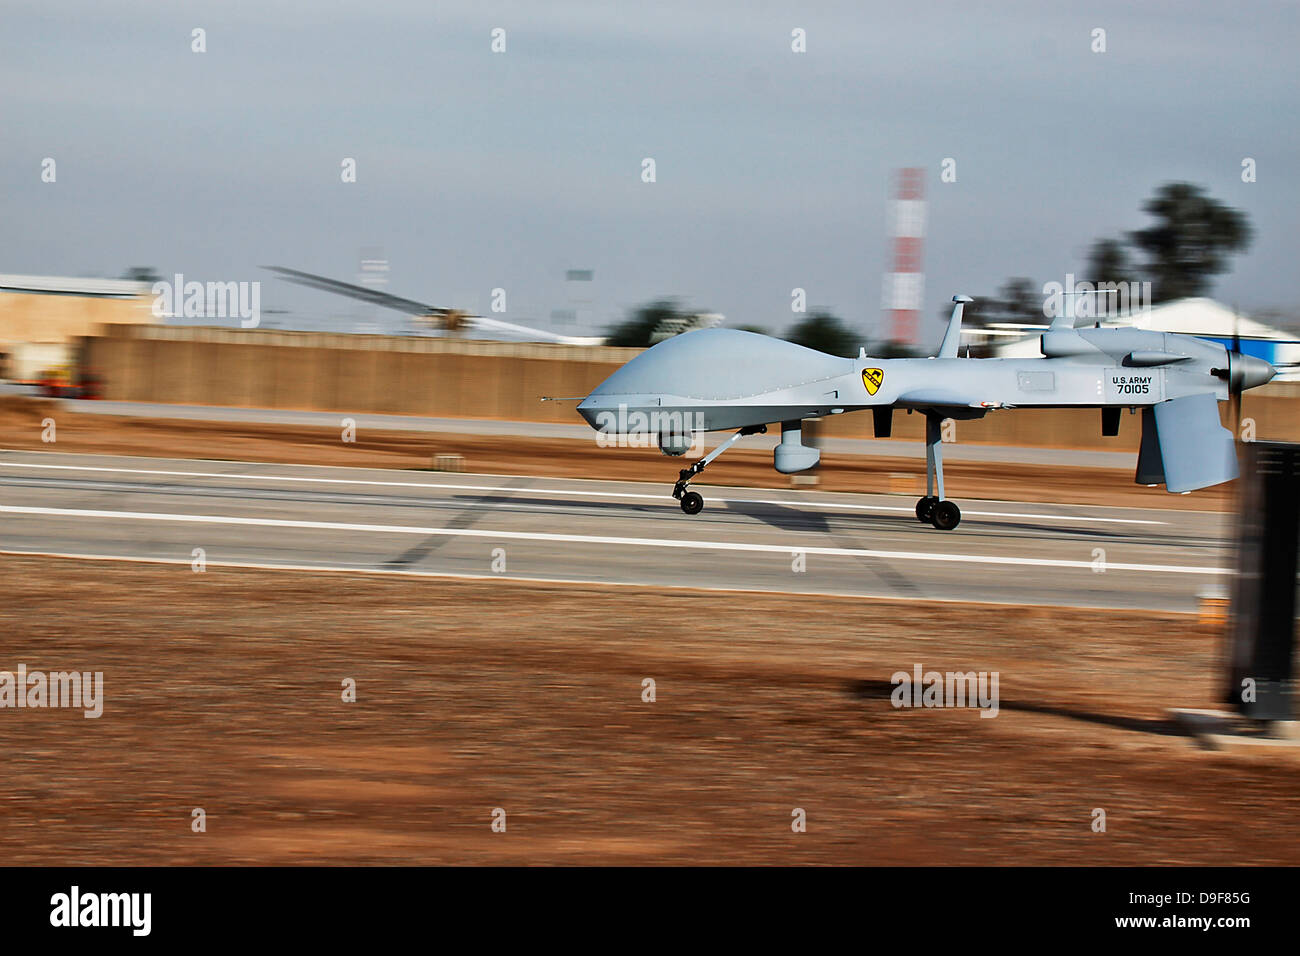 January 11, 2010 - An MQ-1C Sky Warrior unmanned aerial vehicle lands at Camp Taji, Iraq. - Stock Image